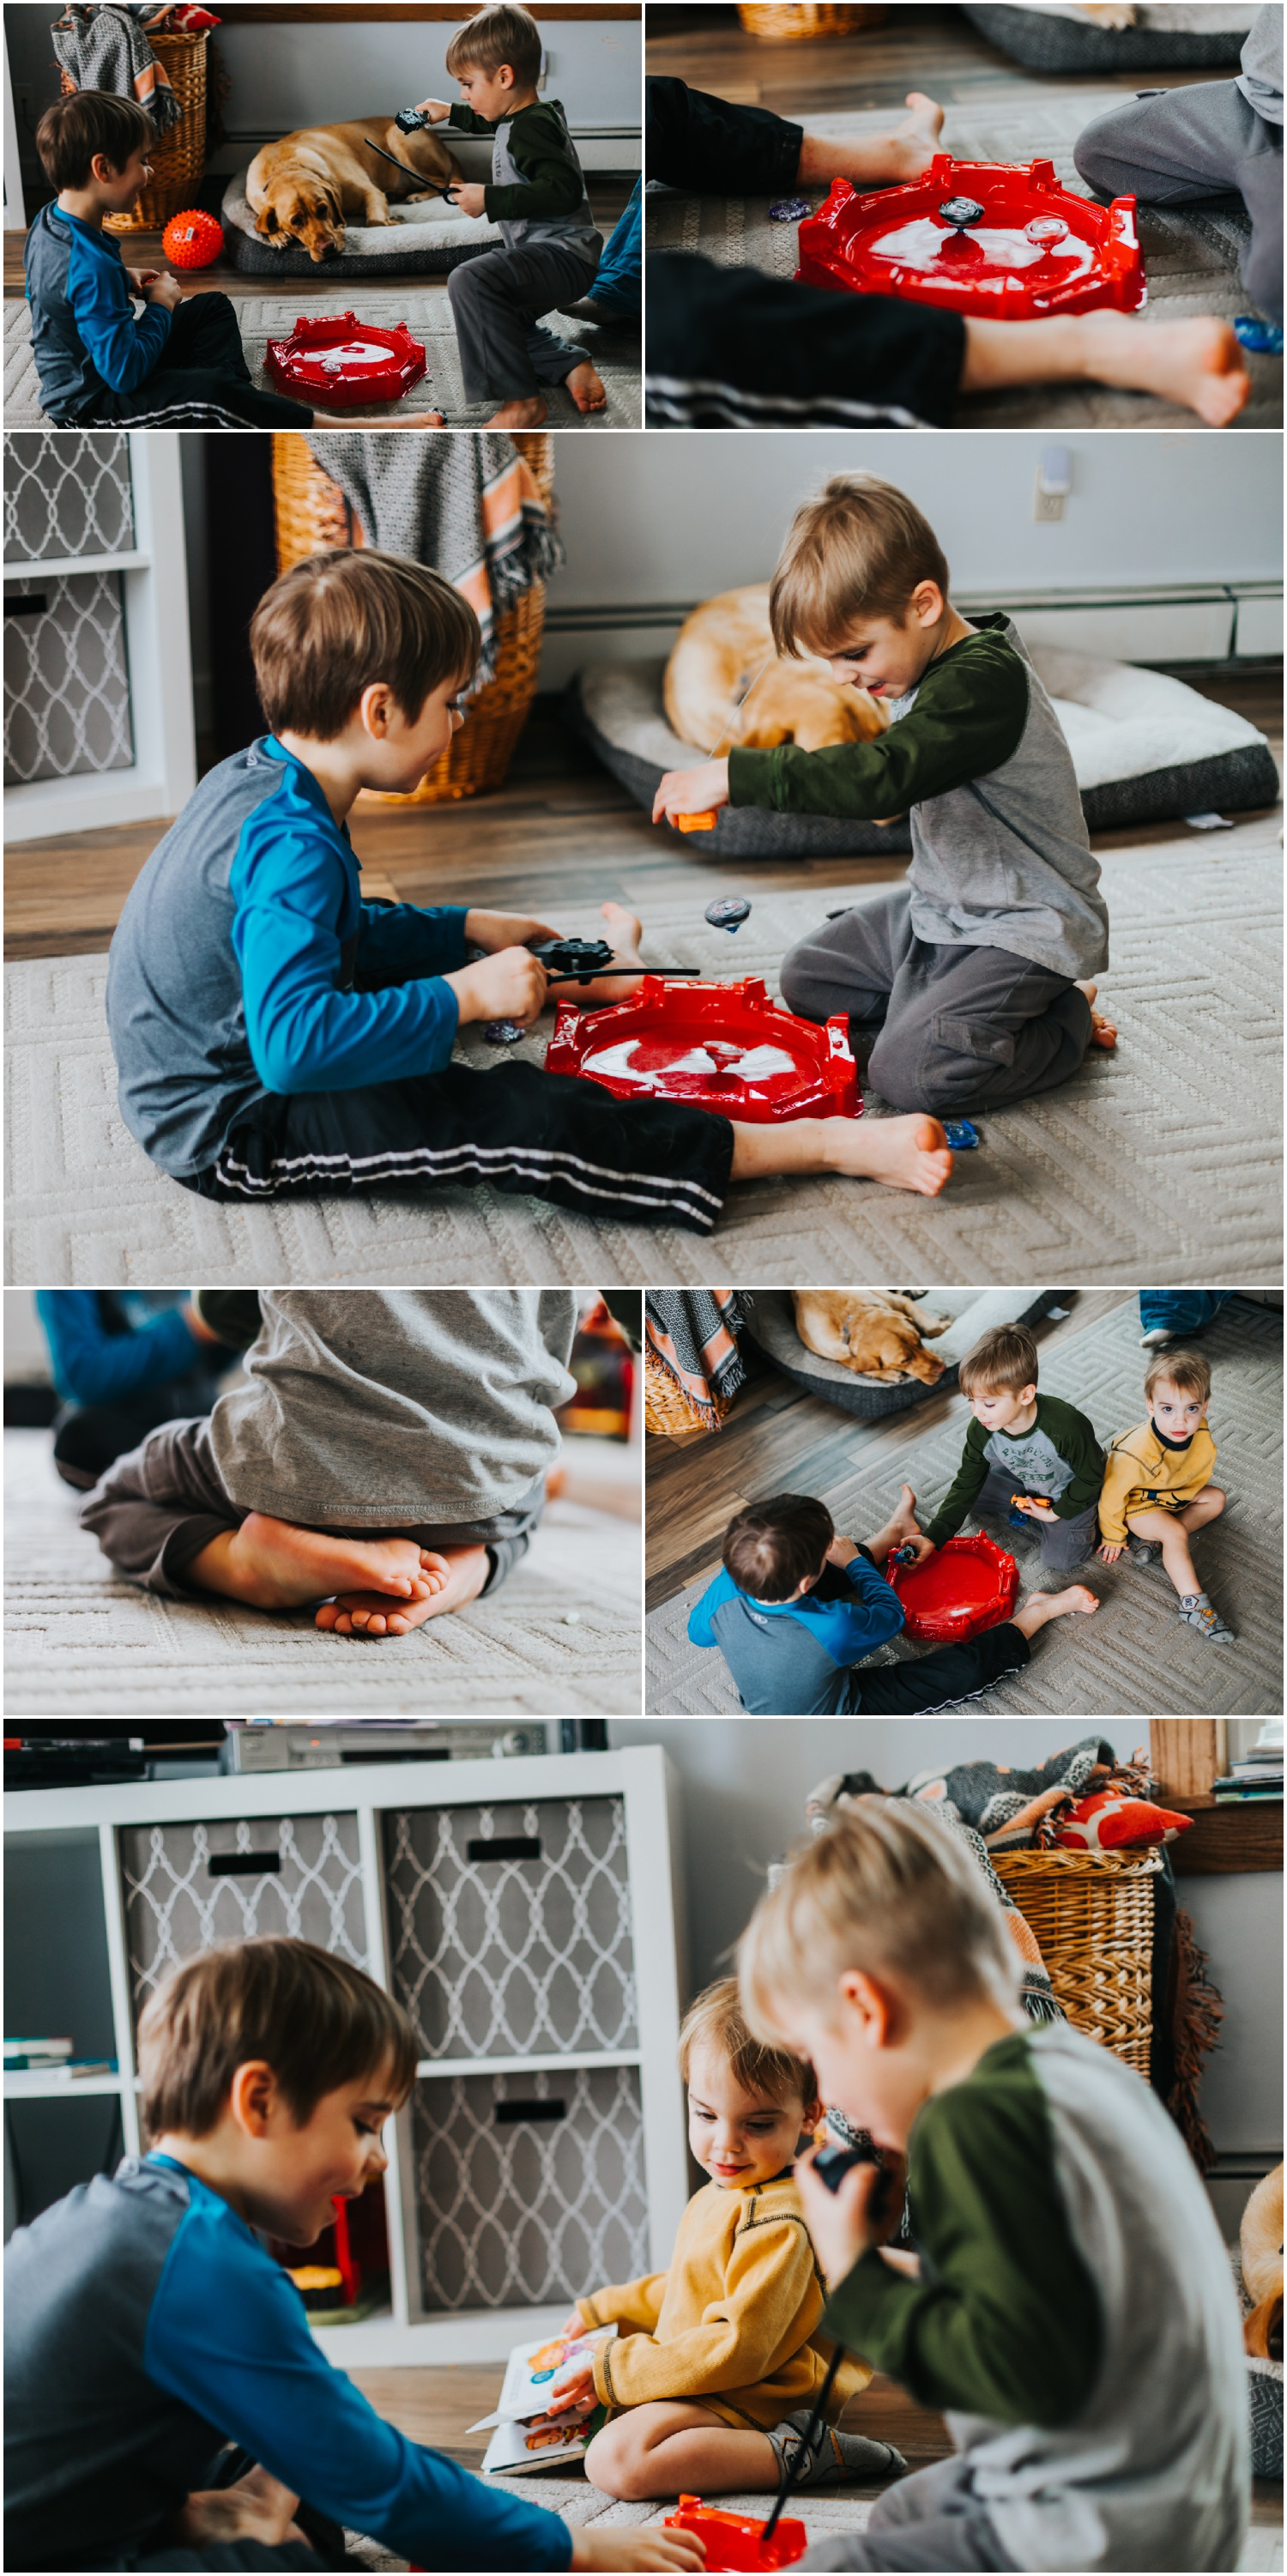 "Anyone else's kids completely enamored with BeyBlades? Our house has this constant 'whirrrrr"" noise going on now…"